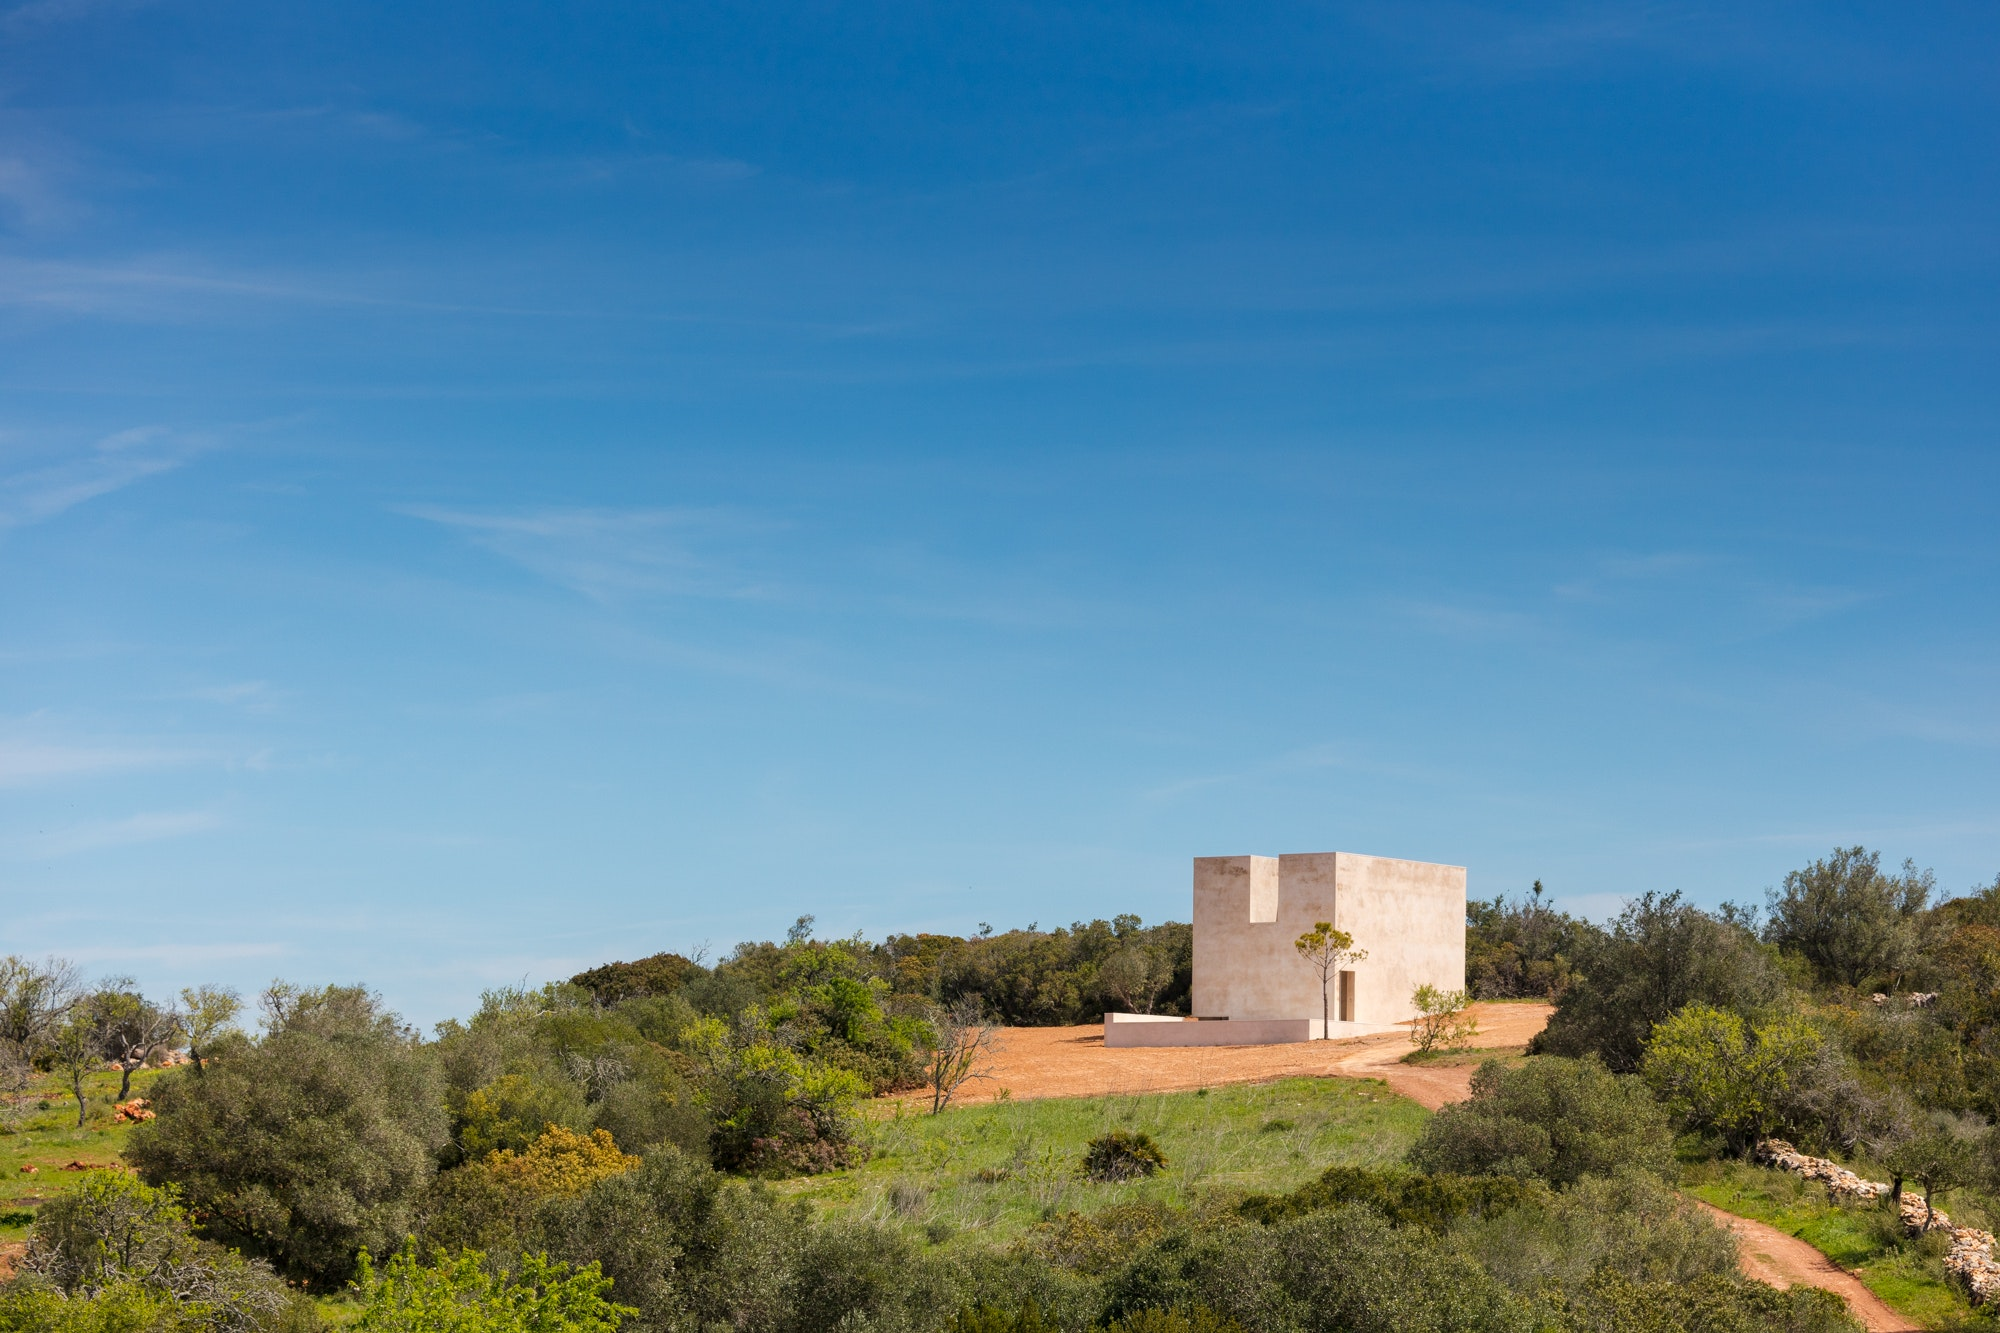 The Chapel Is Surrounded By Natural Landscape, Making It A Peaceful,  Spirit Restoring Retreat. All Images Courtesy Of João Morgado.